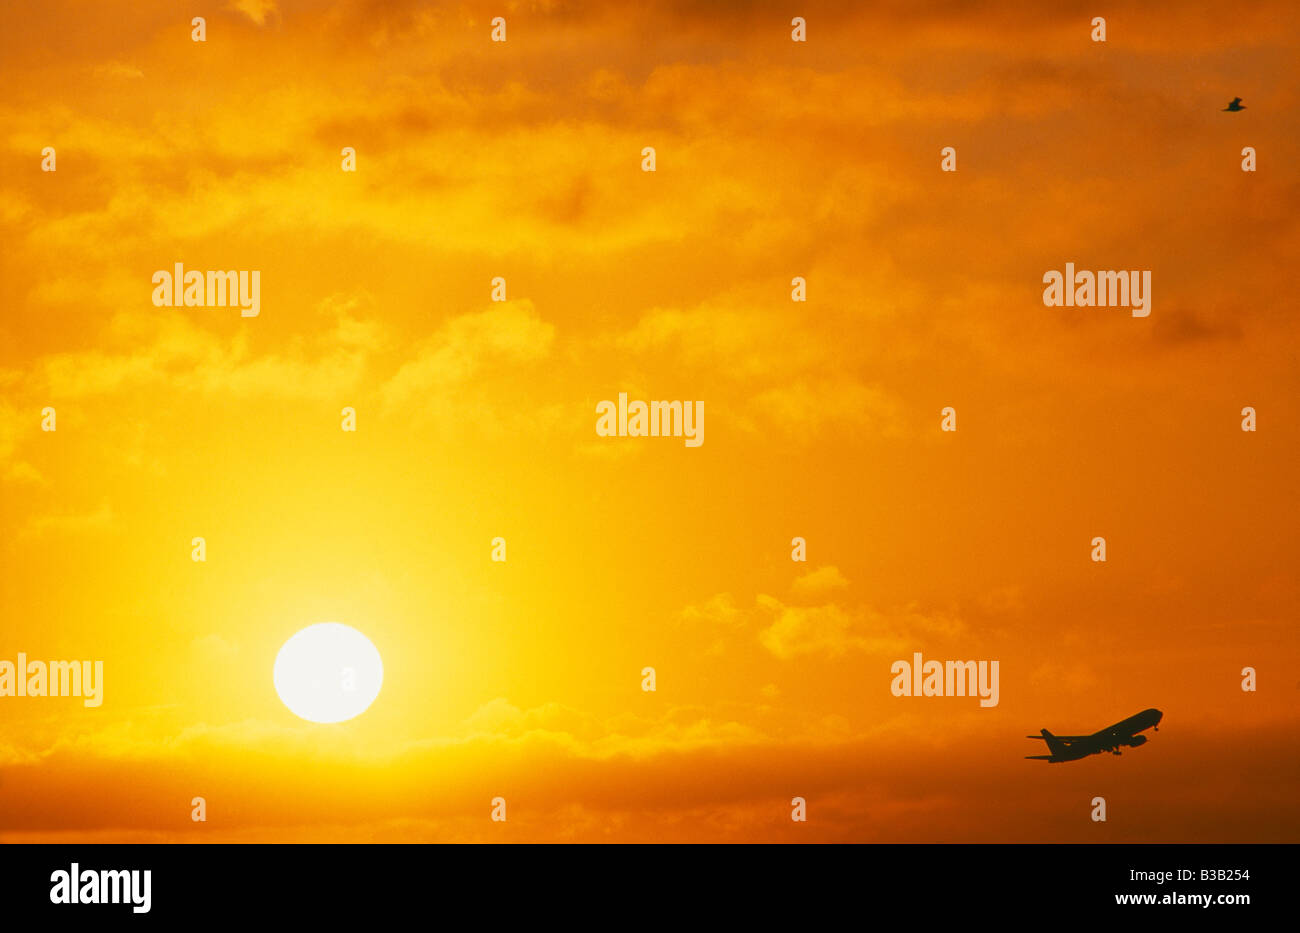 an aircraft taking off in front of the sunrise with a bird mirroring the plane, Heathrow, London, UK - Stock Image